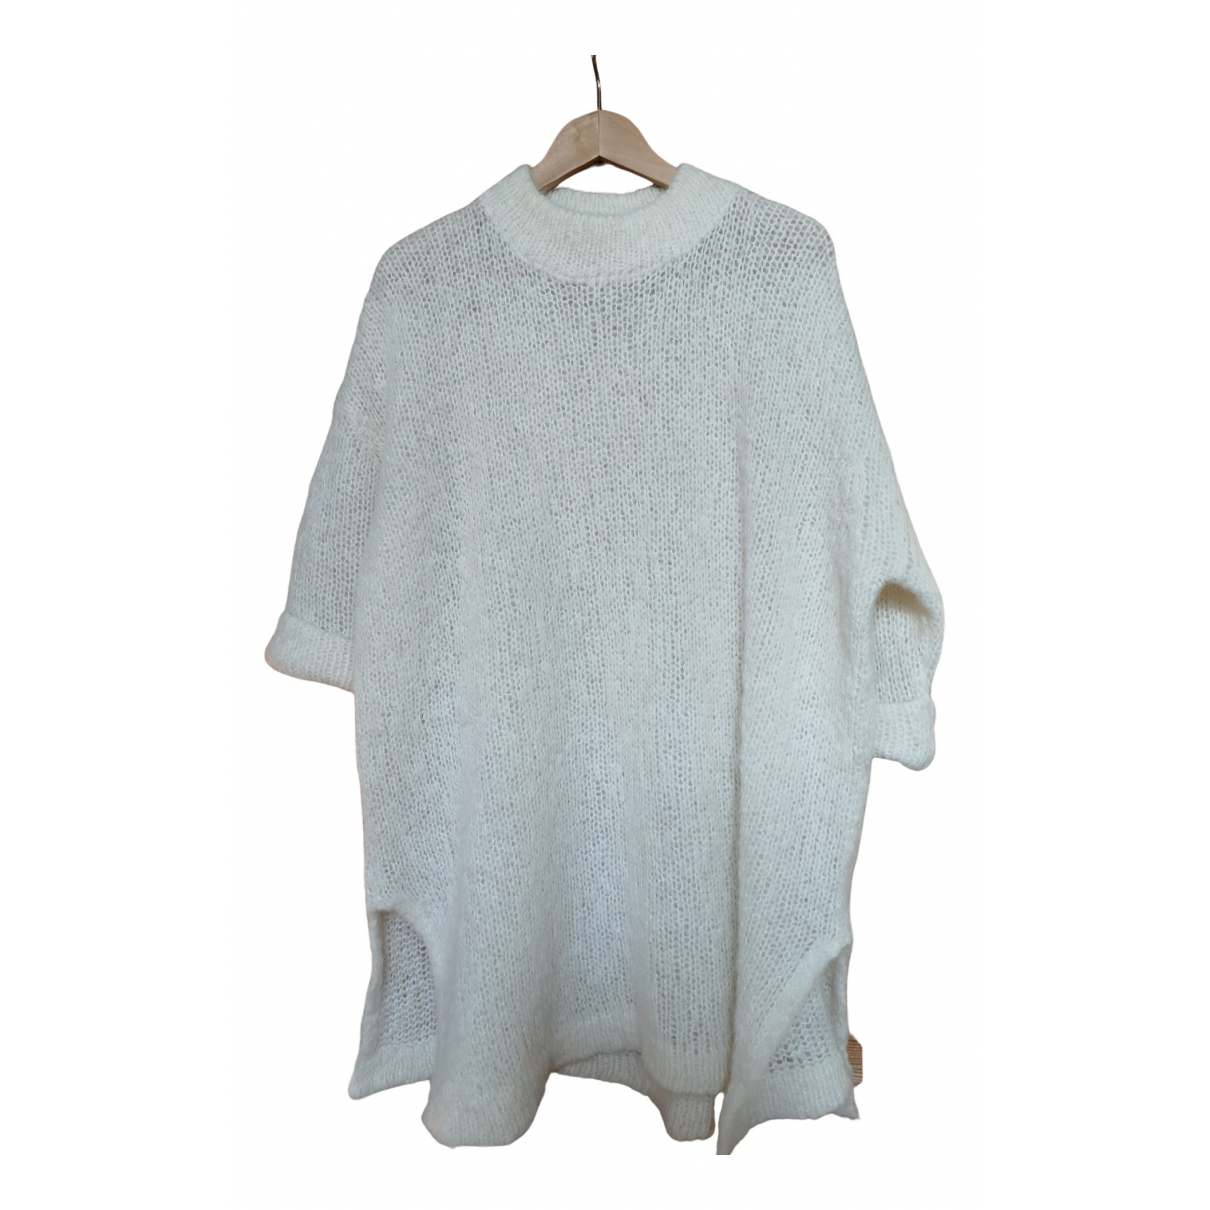 American Vintage \N Pullover in  Weiss Wolle